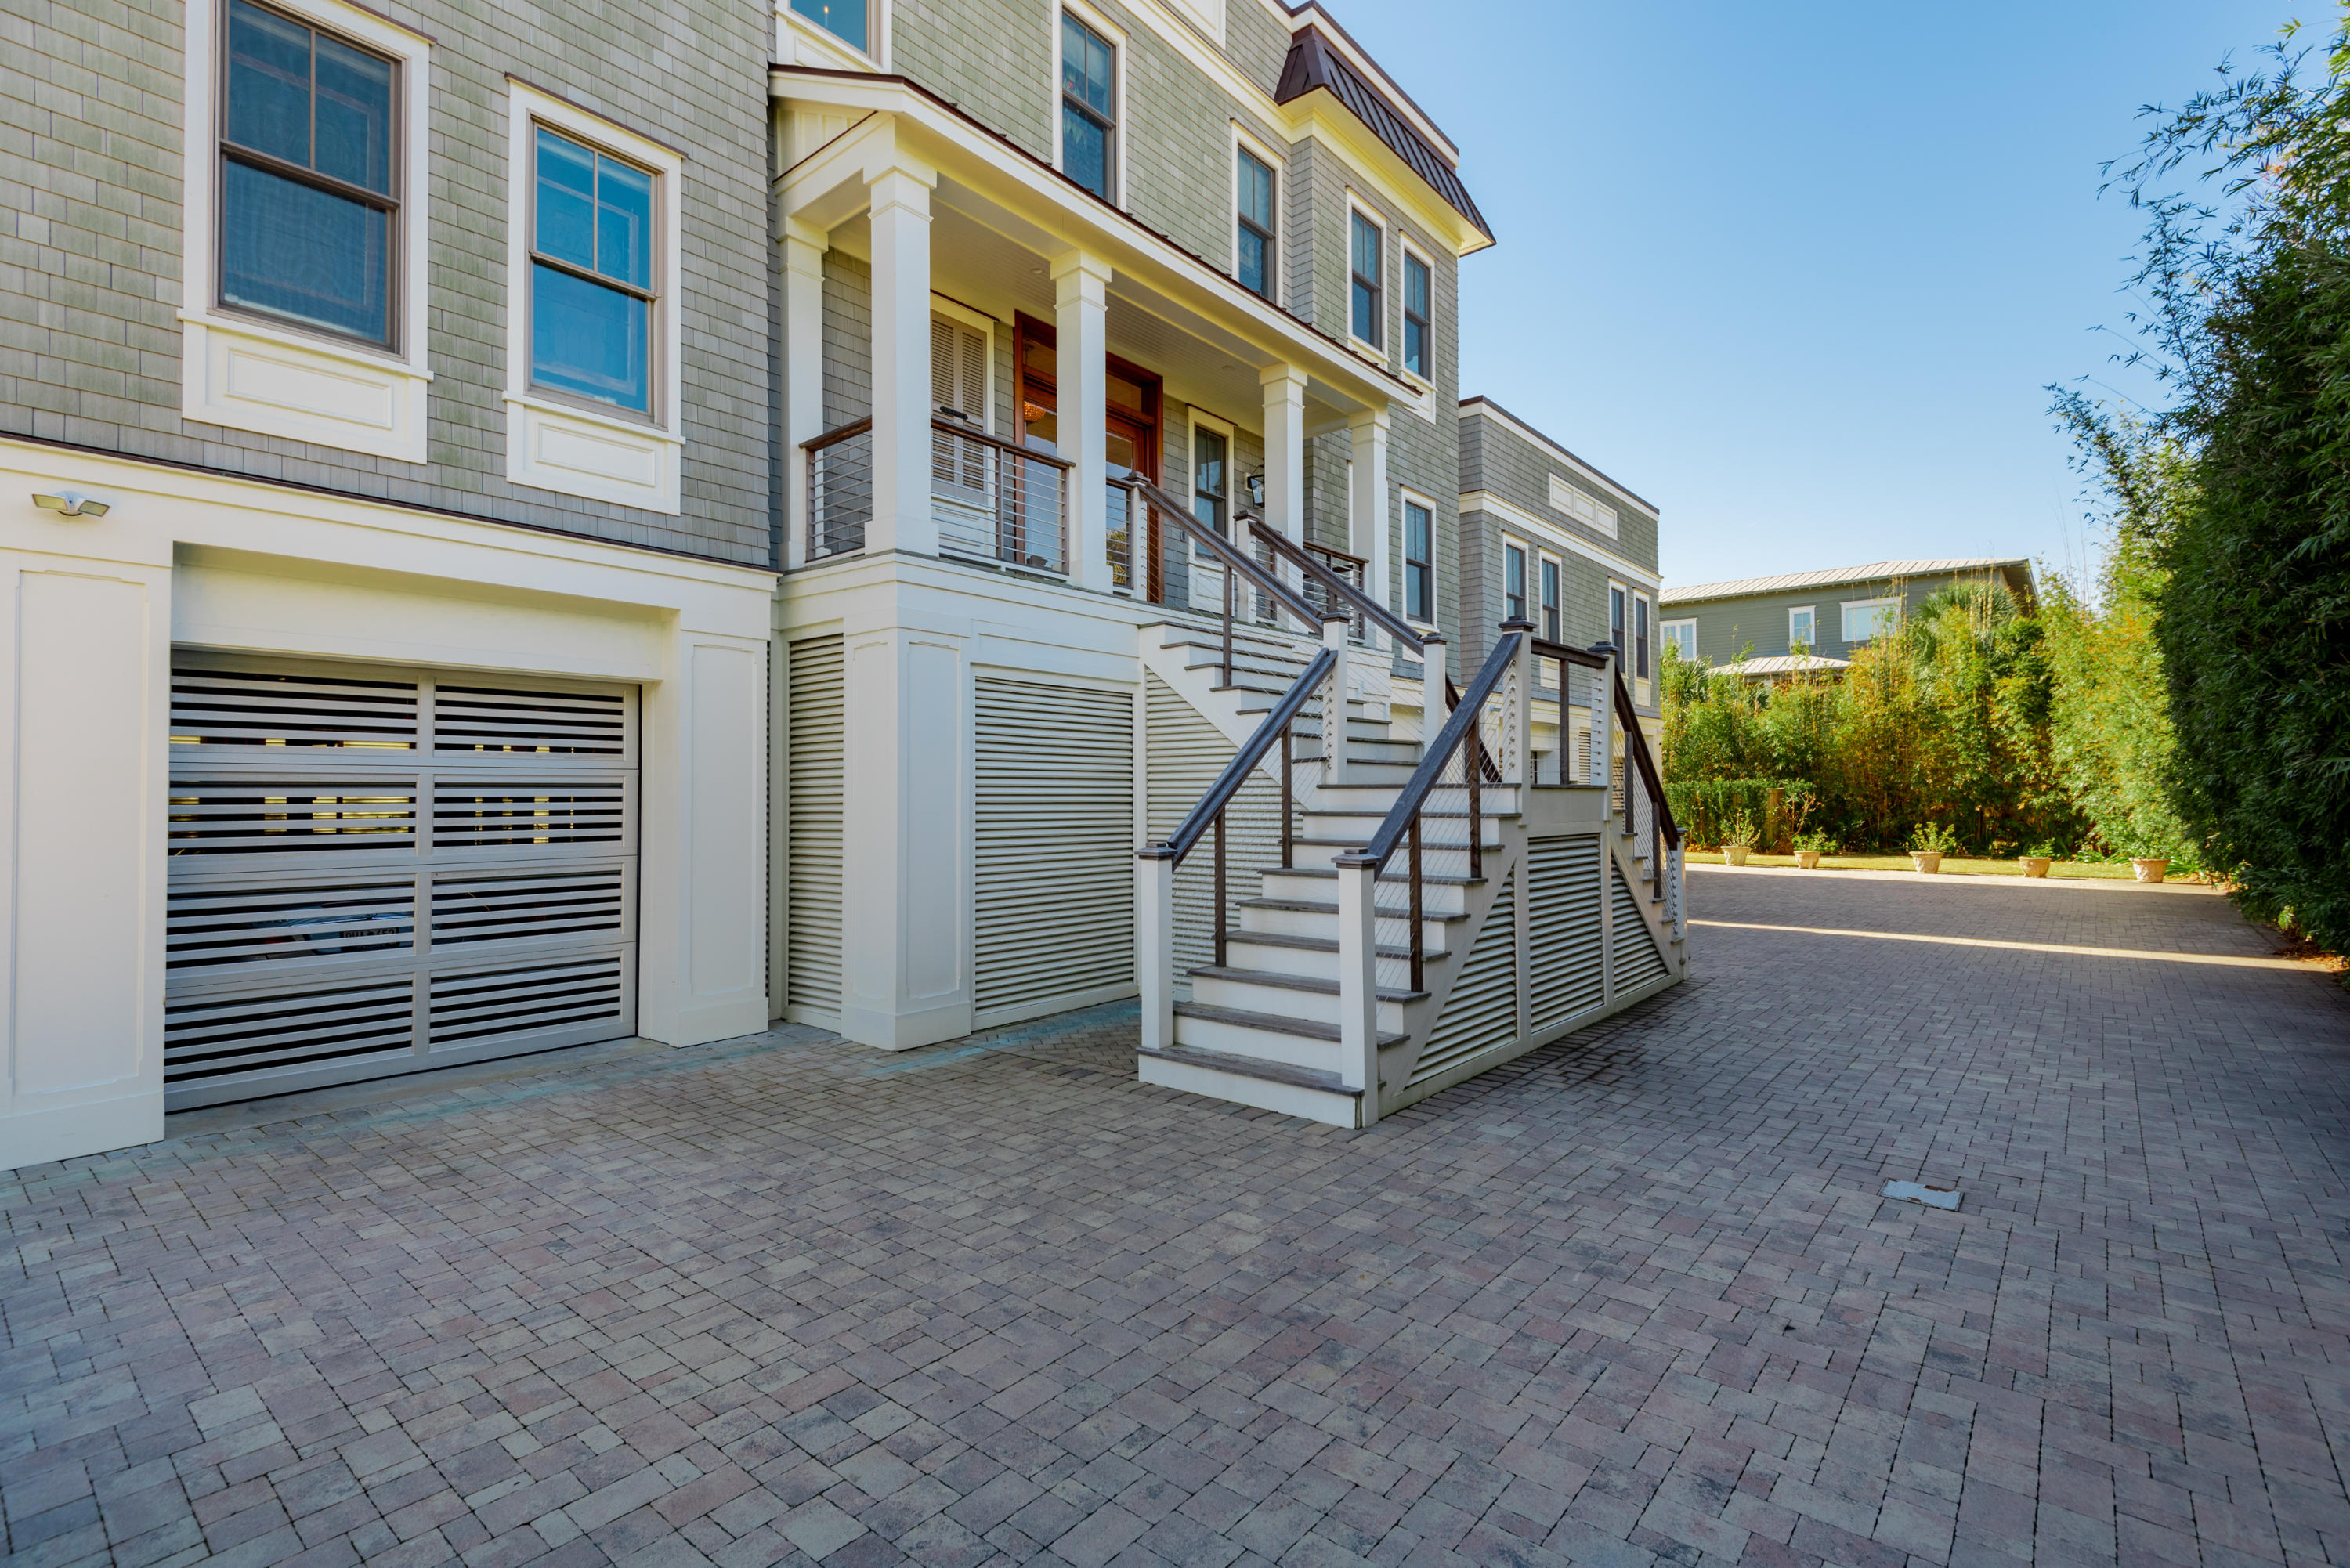 Isle of Palms Homes For Sale - 3 53, Isle of Palms, SC - 29